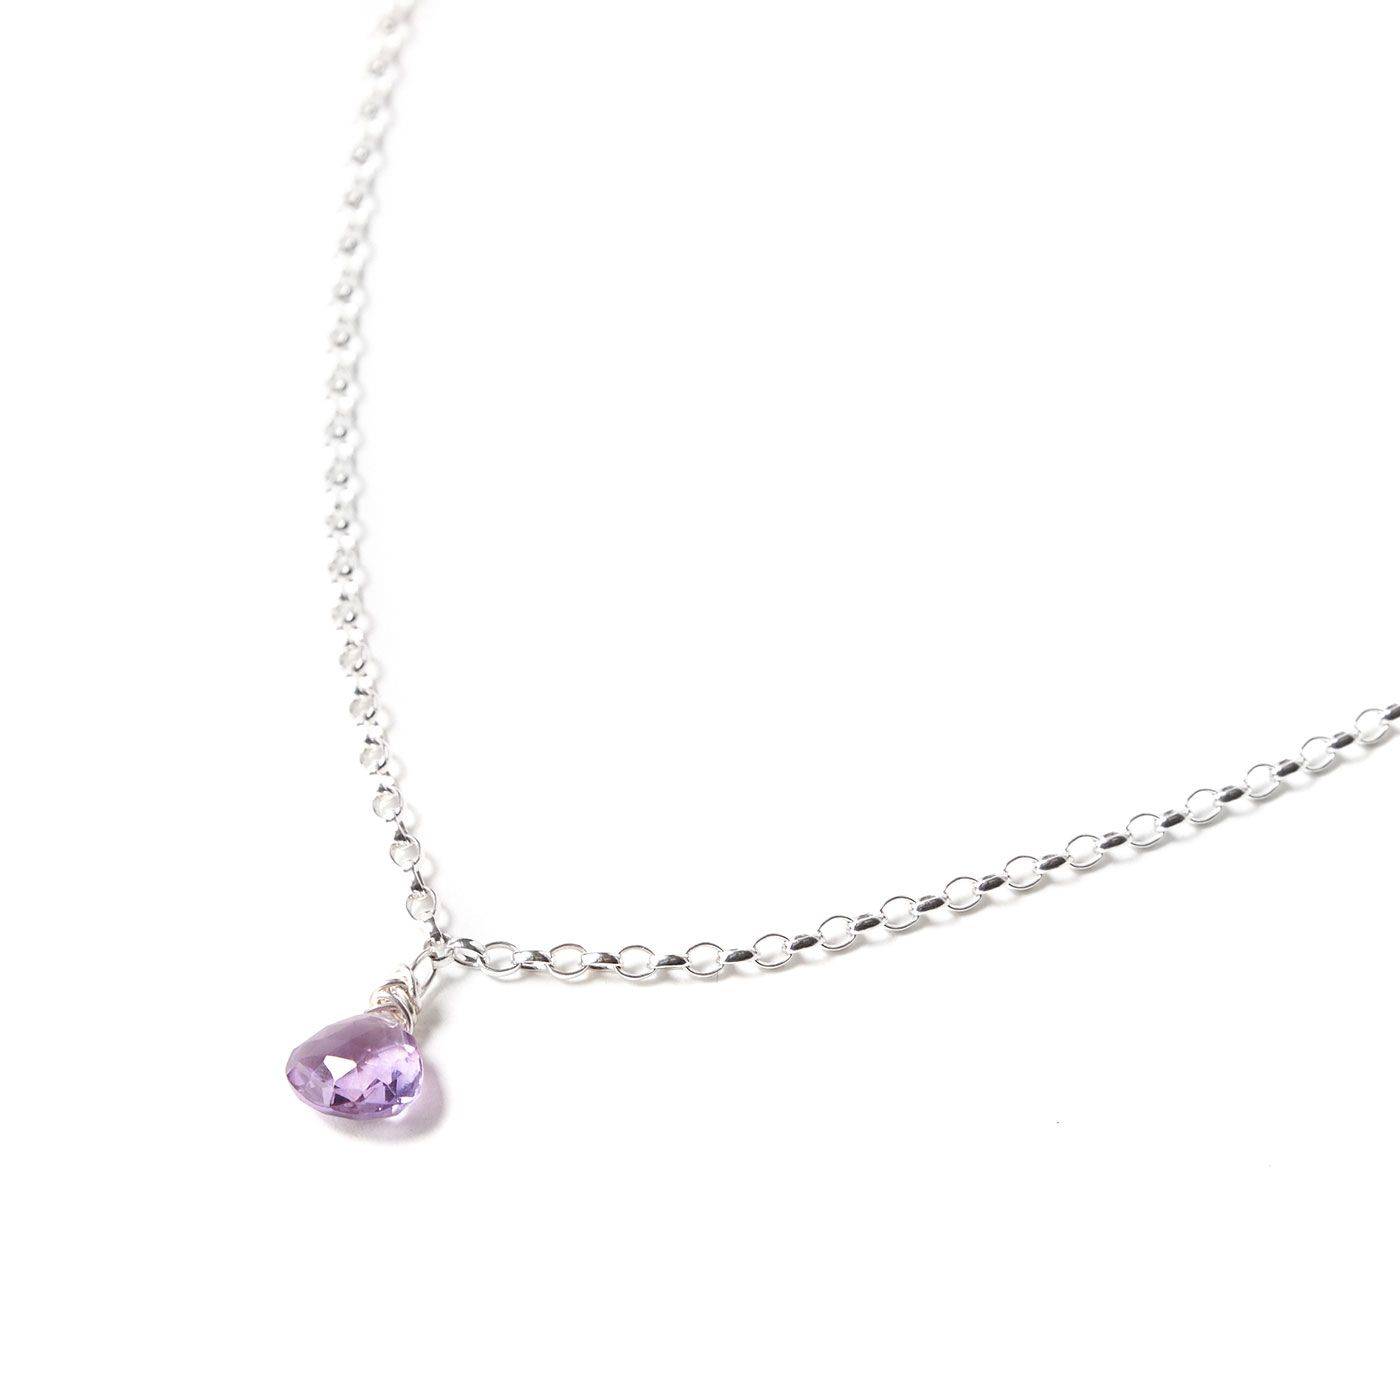 Sterling Silver and Amethyst Necklace  Photography by Becky Starsmore